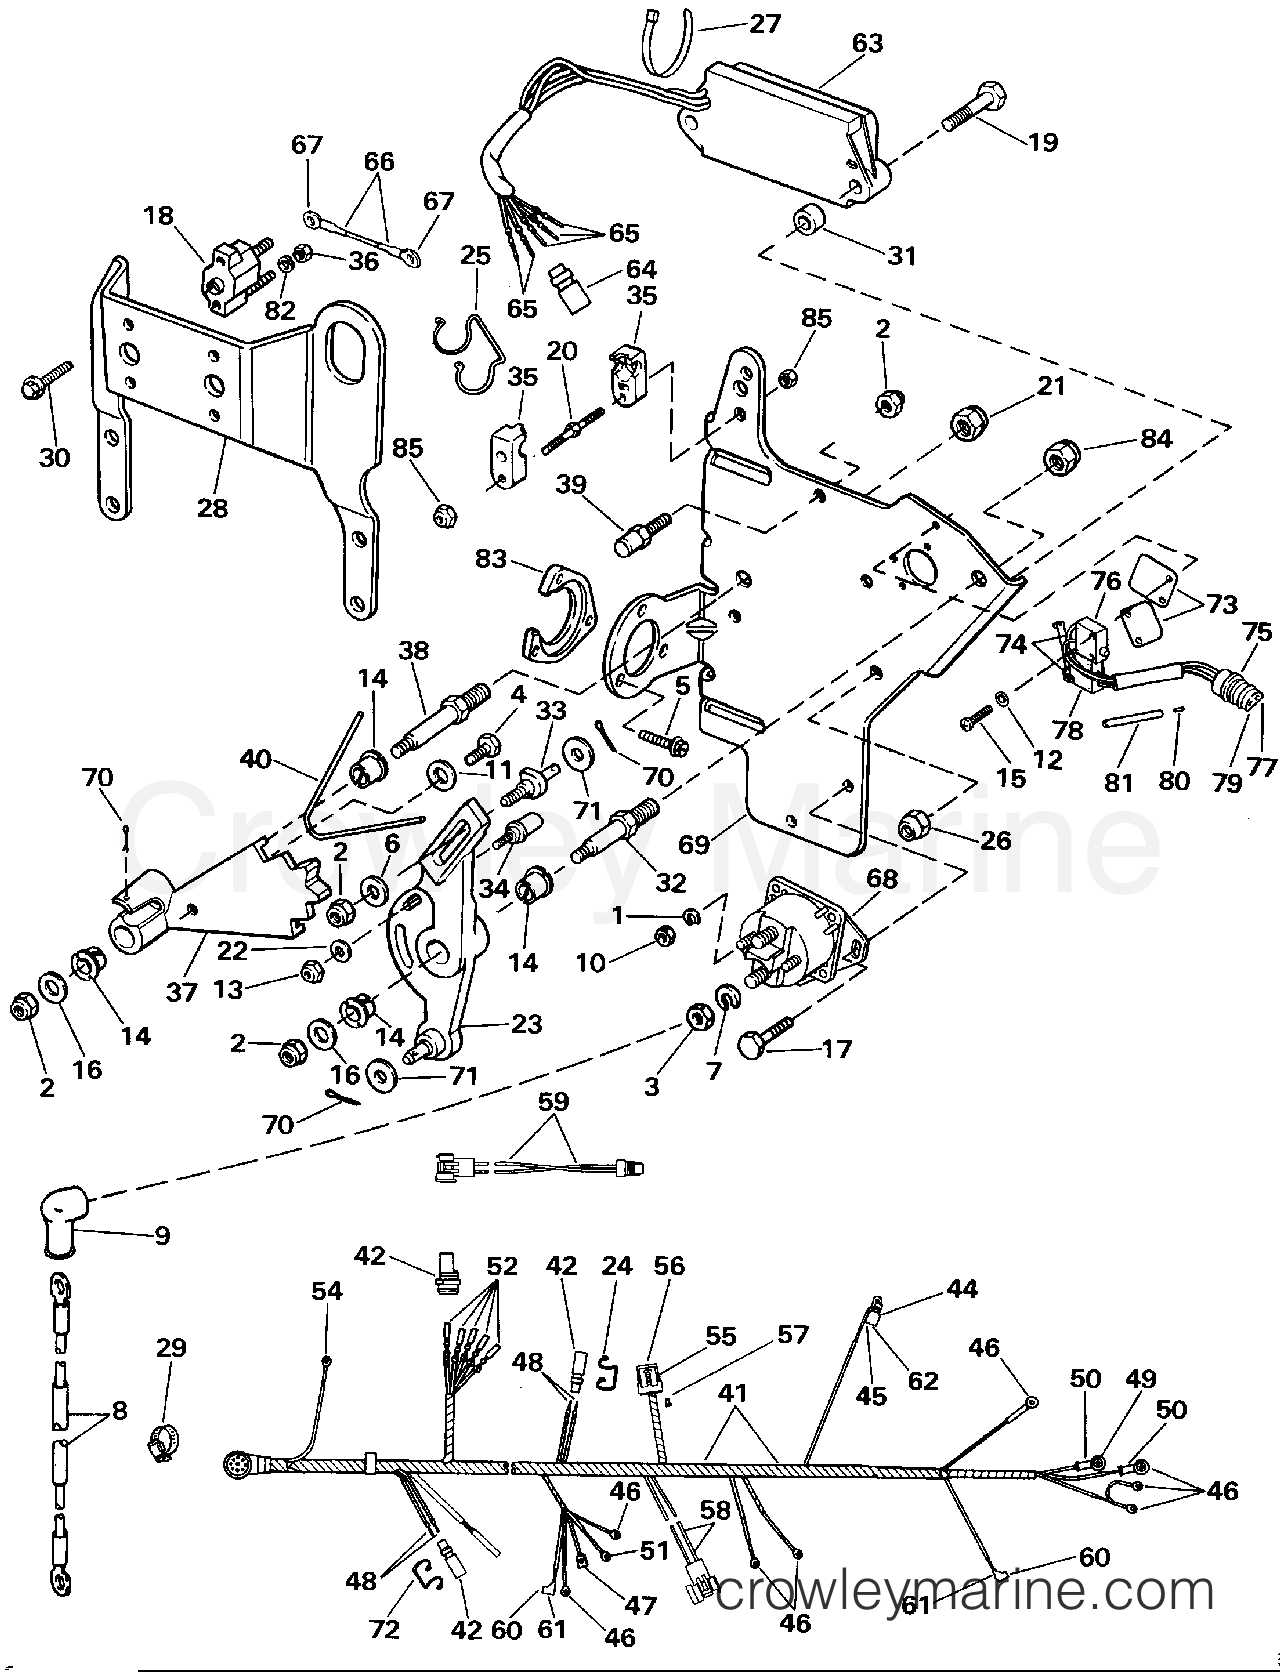 hight resolution of 1991 omc stern drive 3 302bmrrgd wire harness bracket solenoid section